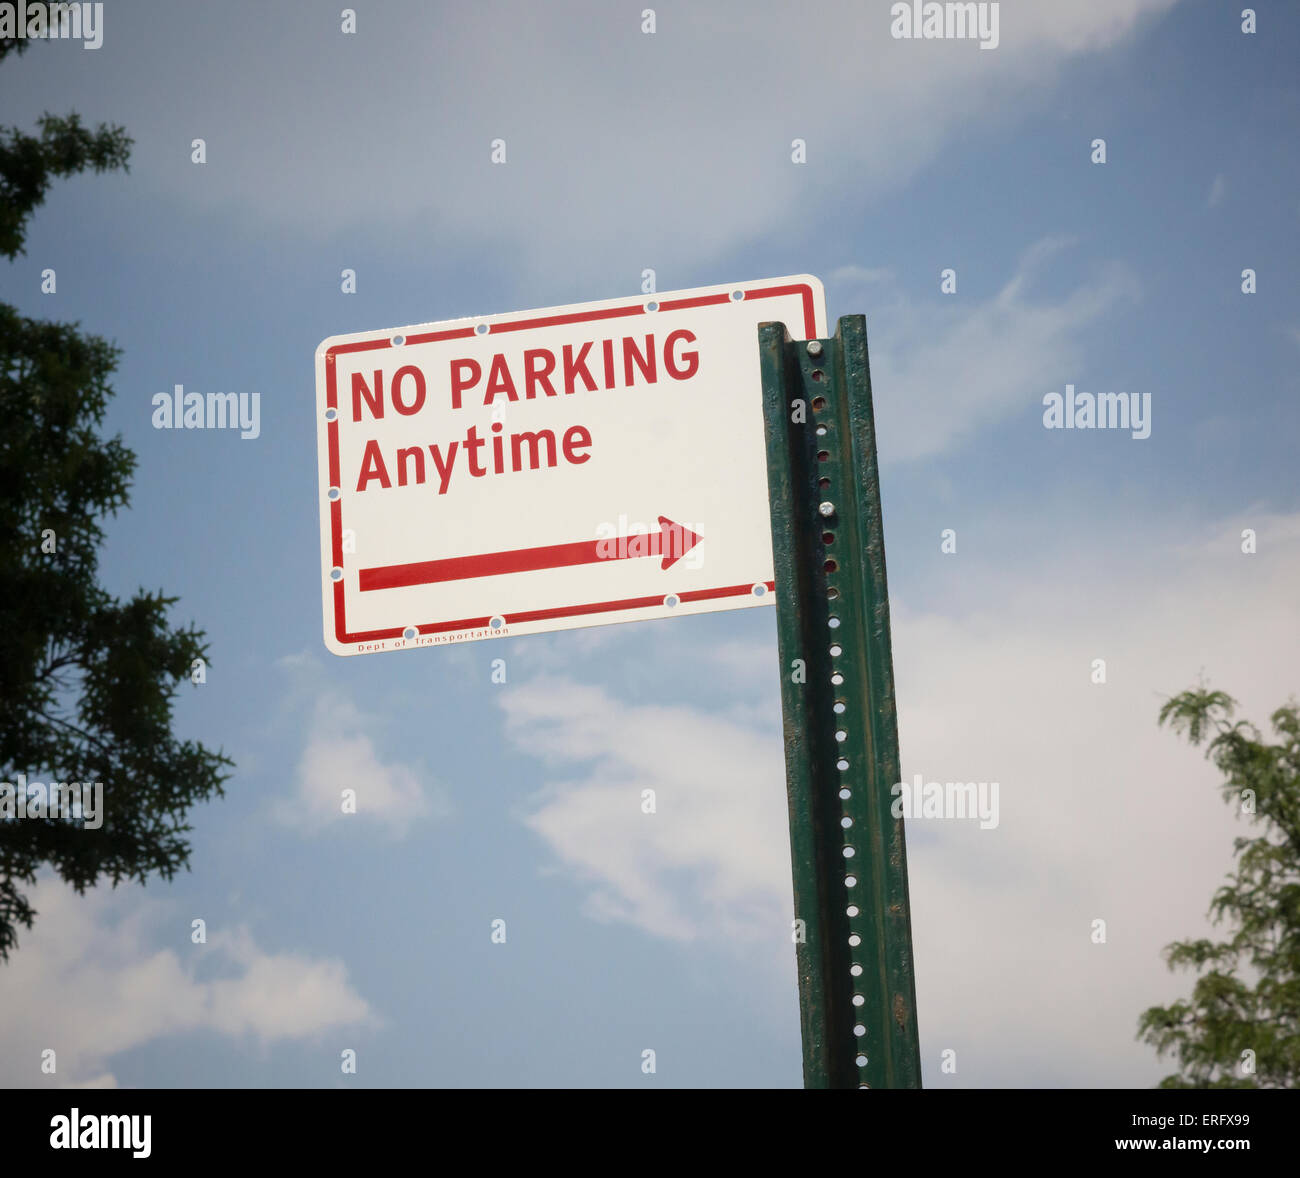 A sign prohibits parking anytime in the Clinton Hill neighborhood of Brooklyn in New York on Sunday, May 31, 2015. - Stock Image